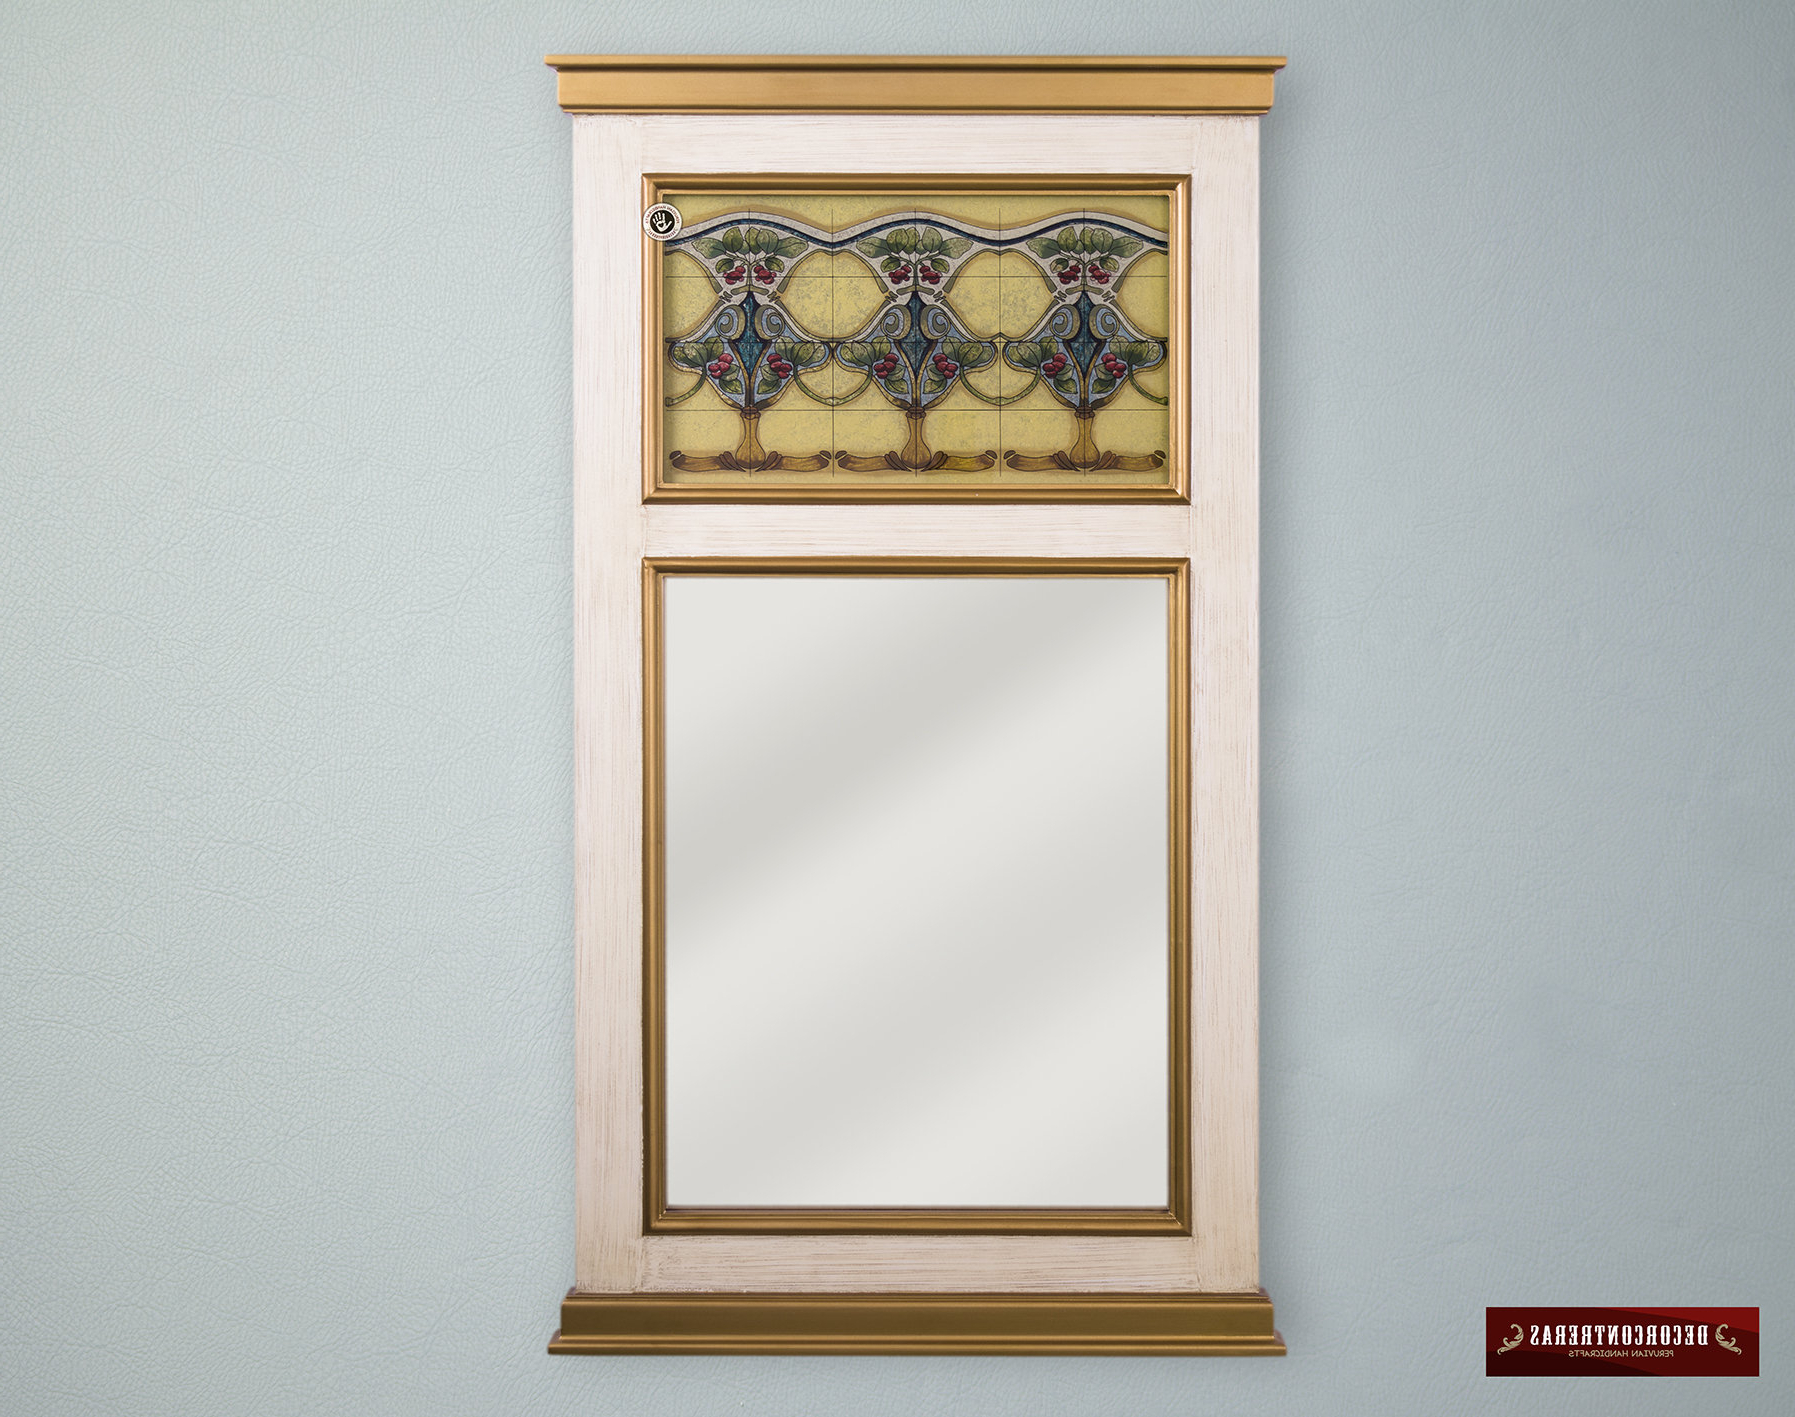 "Long Narrow Wall Mirror ""art Nouveau"", Beige Narrow Wood Framed Wall Mounted Mirror, Decorative Accent Mirror, Peruvian Hand Painted Glass Pertaining To Recent Long Narrow Wall Mirrors (View 15 of 20)"